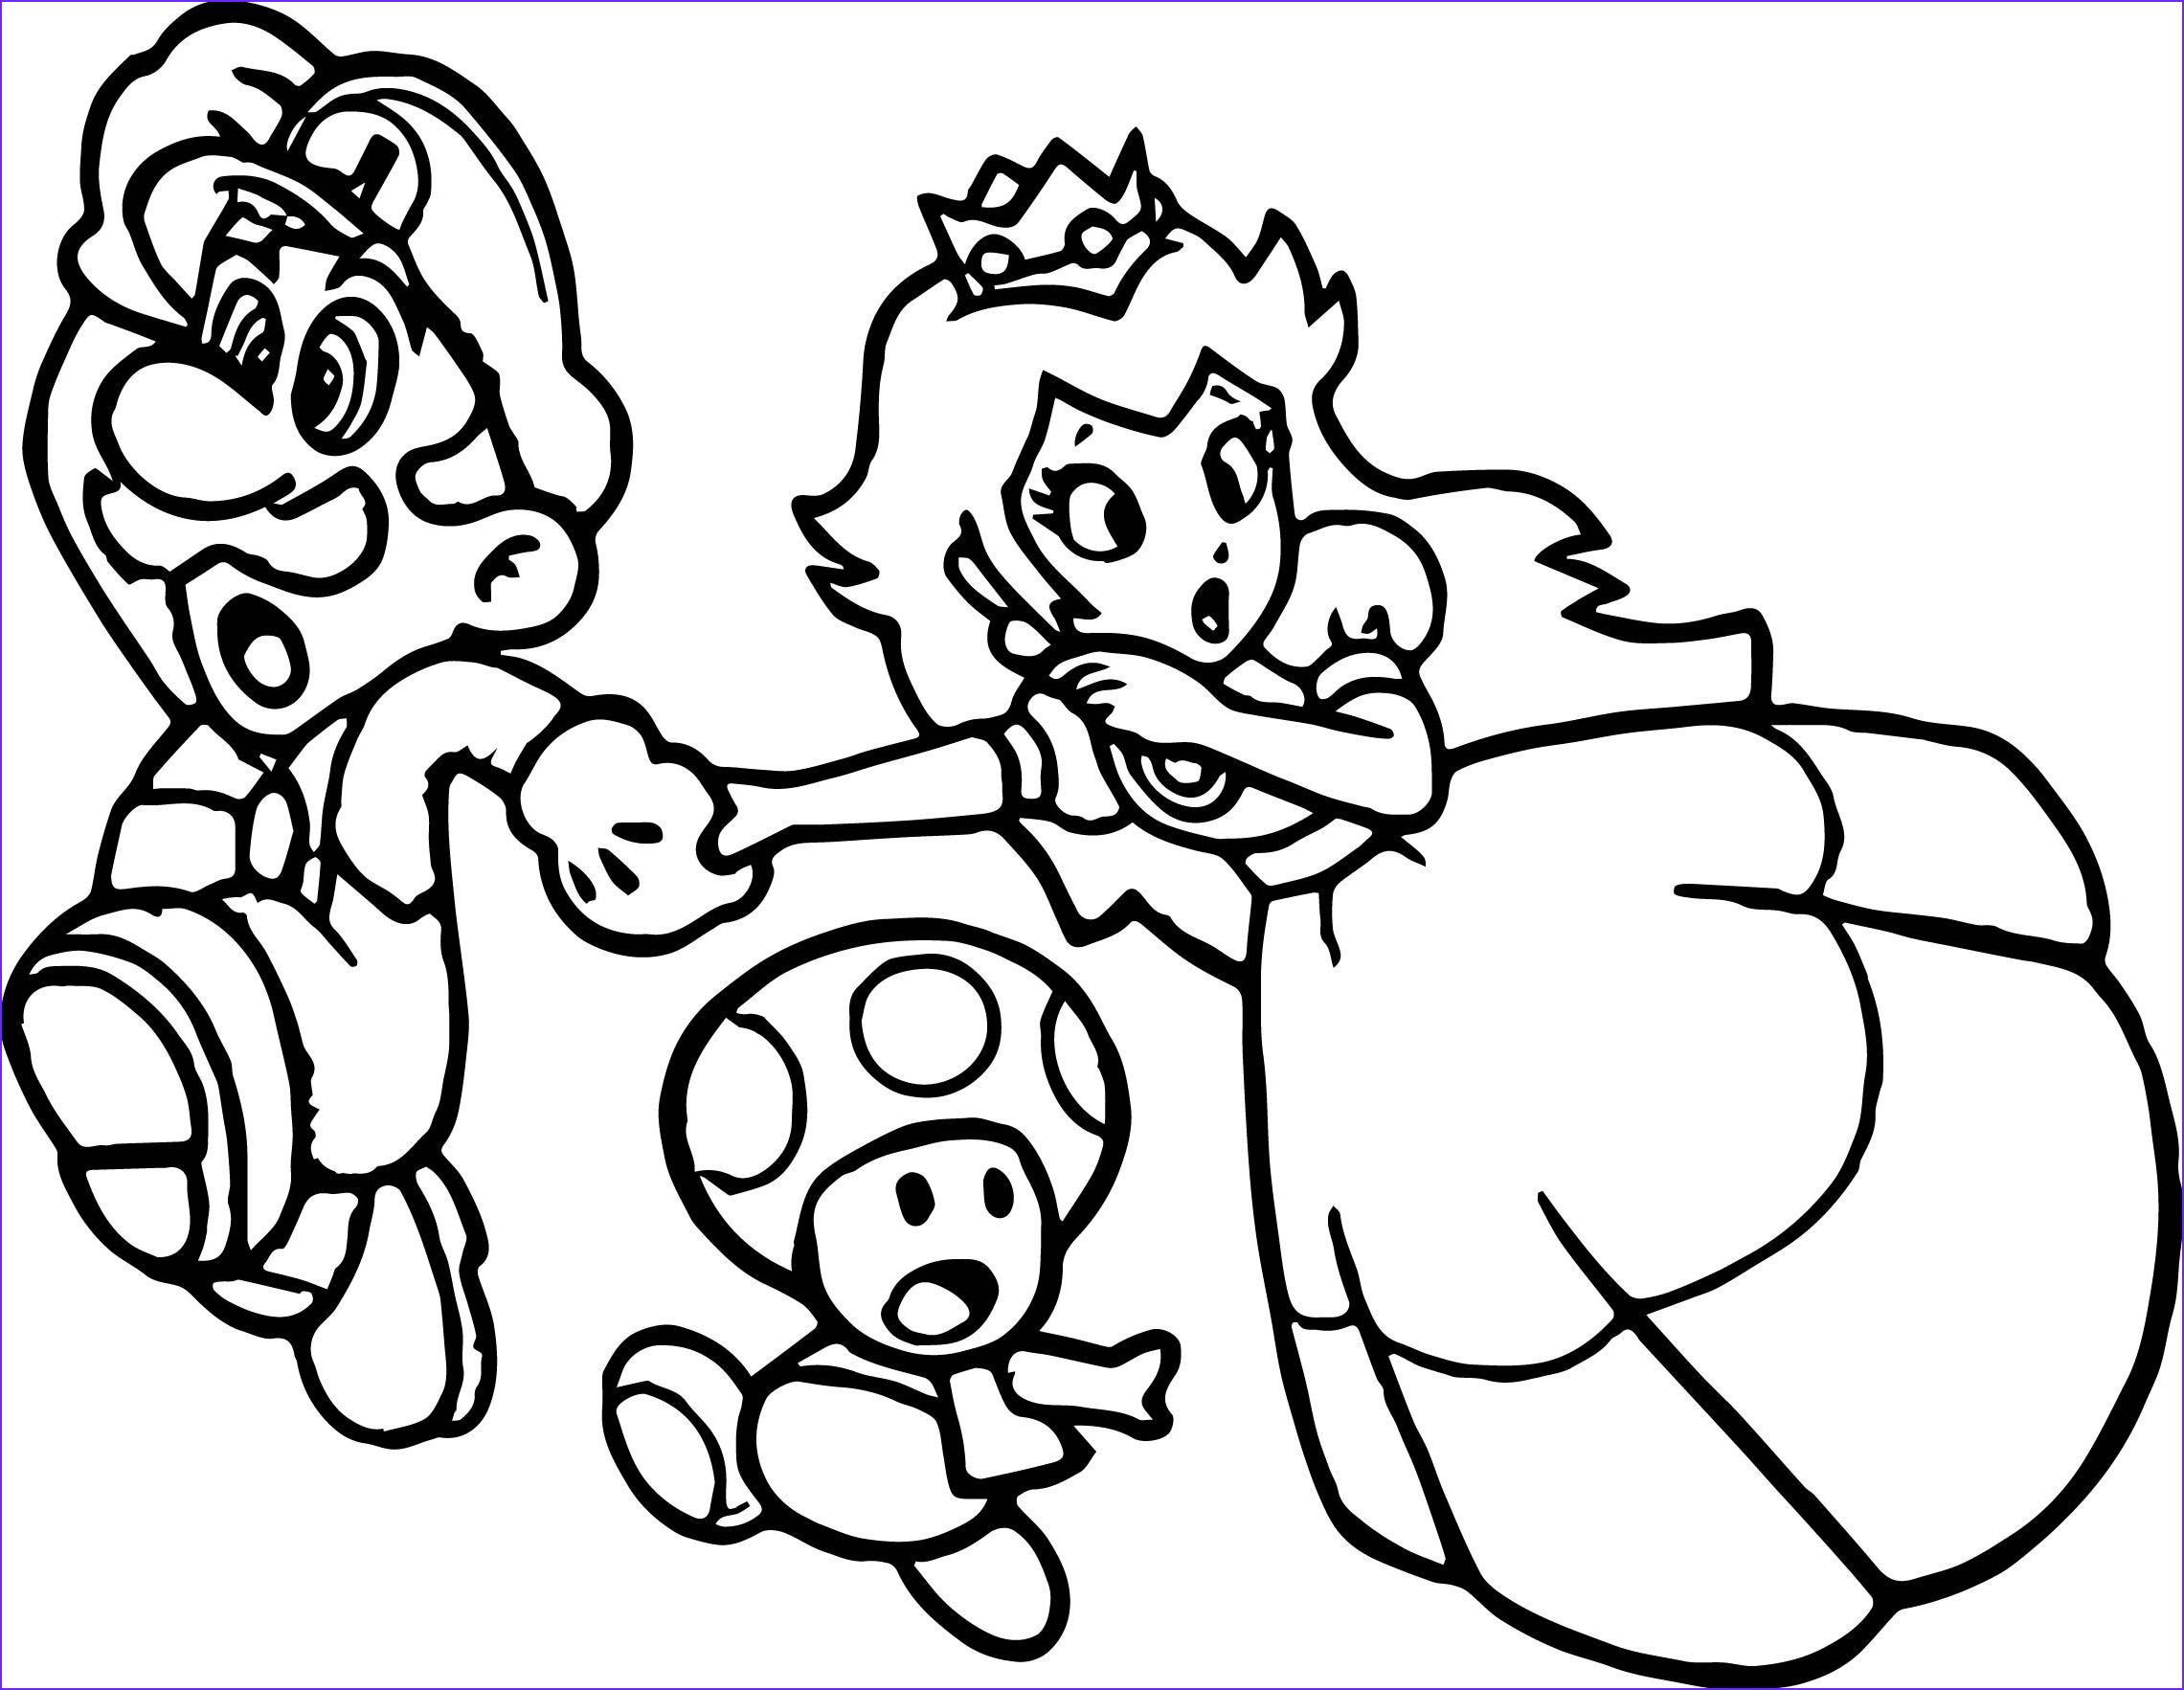 Mario Odyssey Coloring Pages Printable Mario Coloring Pages Super Mario Coloring Pages Coloring Pages